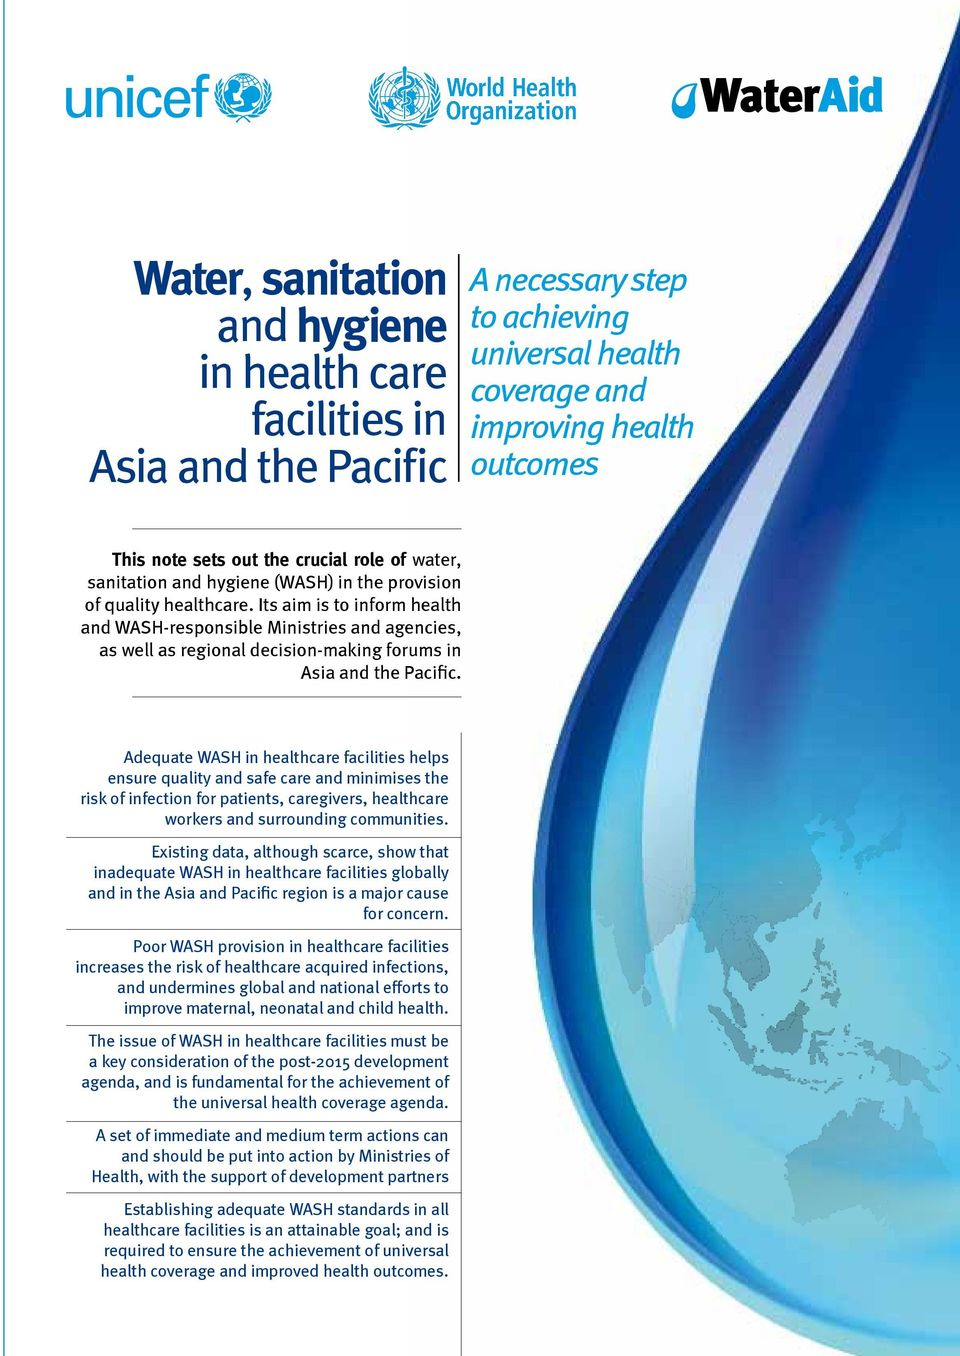 Its aim is to inform health and WASH-responsible Ministries and agencies, as well as regional decision-making forums in Asia and the Pacific.